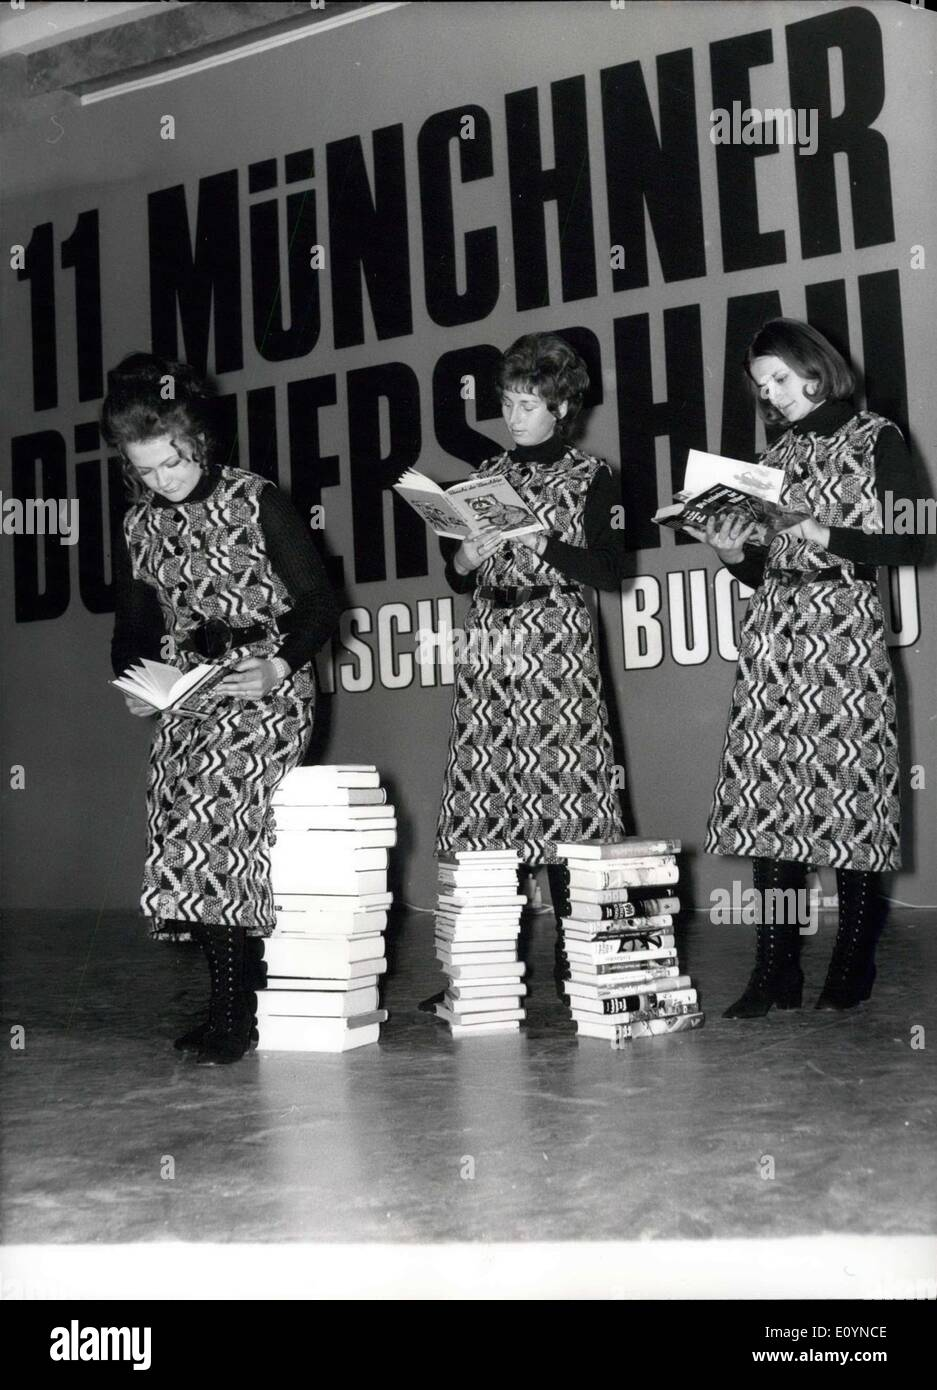 Nov. 23, 1970 - 11th book exhibition in the ''House of Arts'', Munich: On the book exhibition which will last from November 18th - December 6th in the ''House of Arts'', Munich (Germany), 7000 books out of the continuous sales program are offered. Apart from this immense selection the ''Munich's book exhibition of the Bavarian publishers and booktraders' offer an interesting program with a pop-performance, readings of authors, special exhibitions and for the youngest a Santa Clays-festival. Photo shows the ''Libresses'' are up to date likewise in literature and fashion - Stock Image